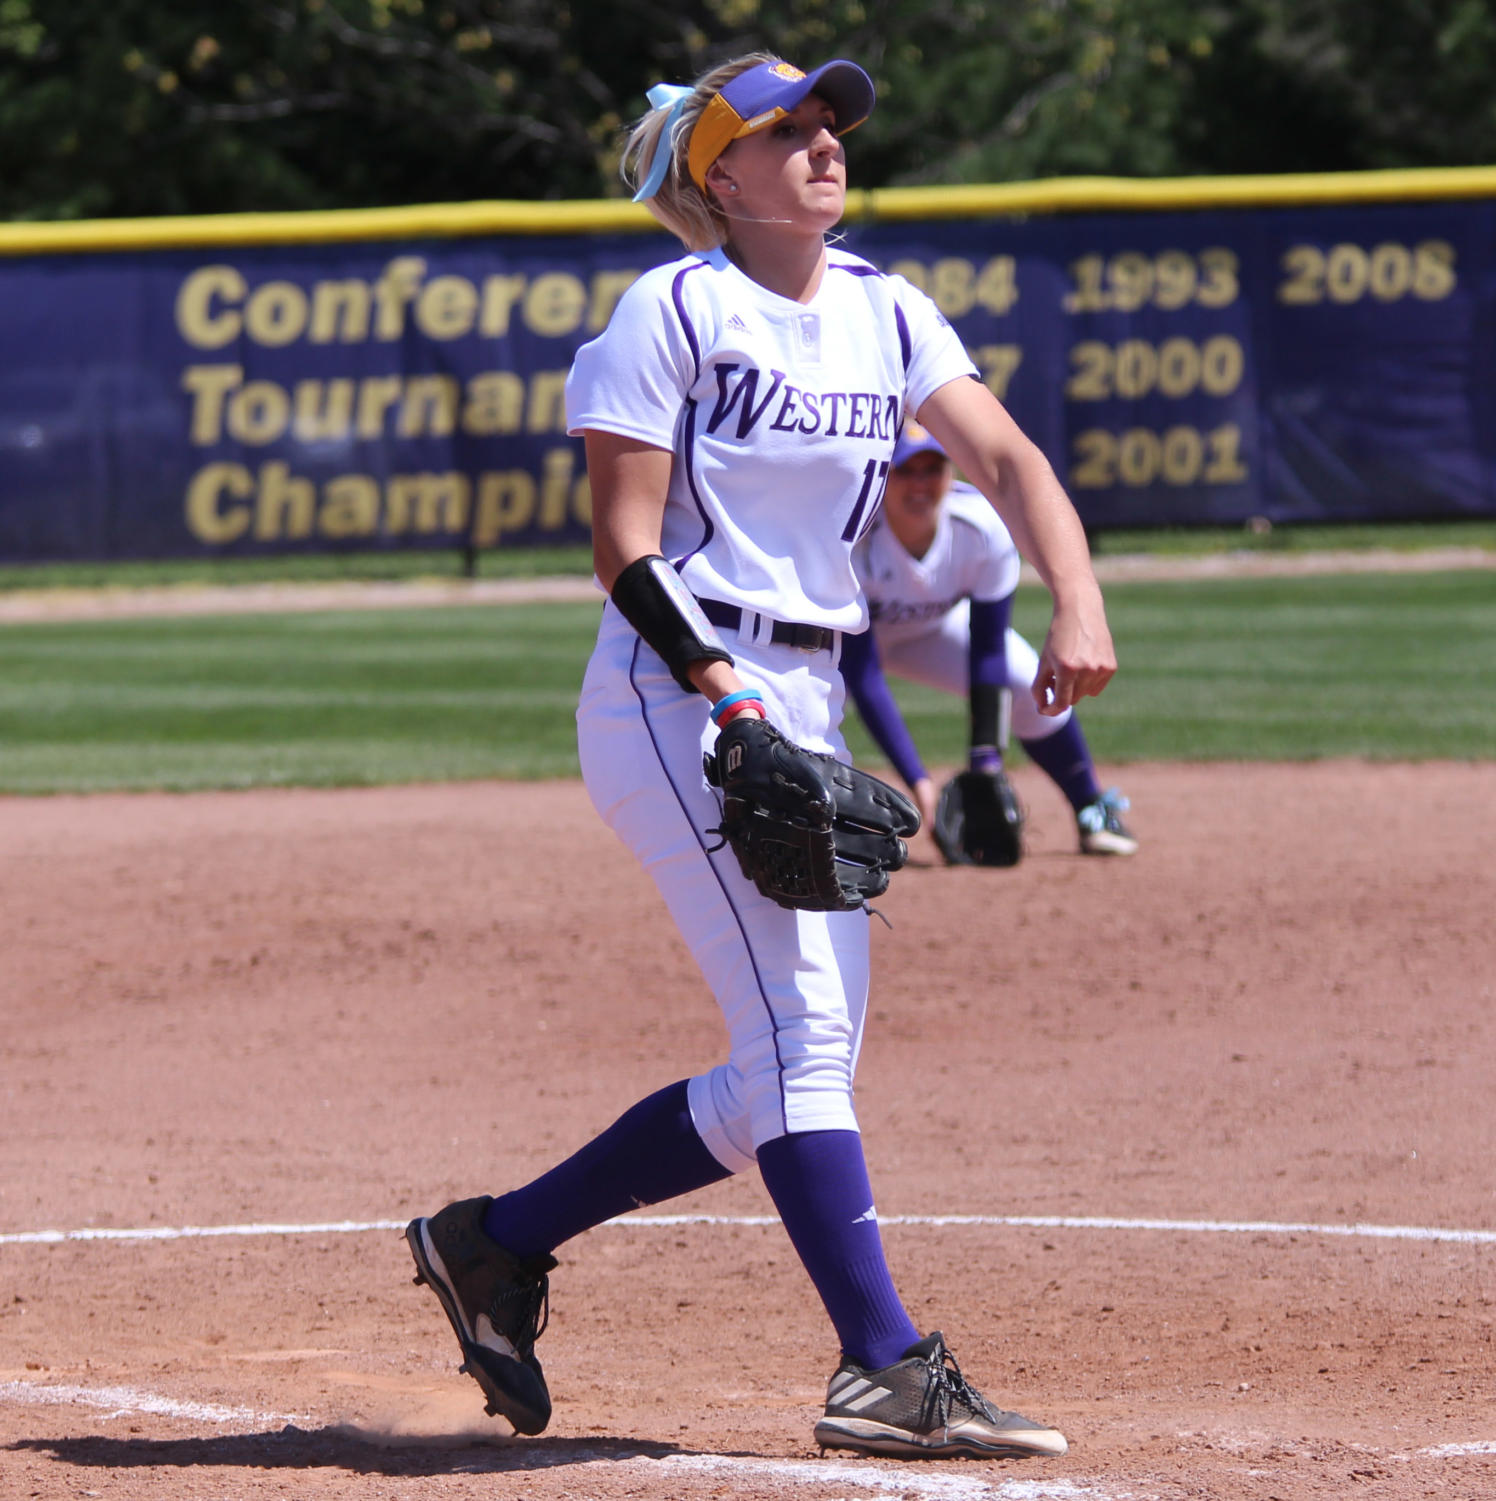 Emily Ira on the mound for the Purple and Gold.